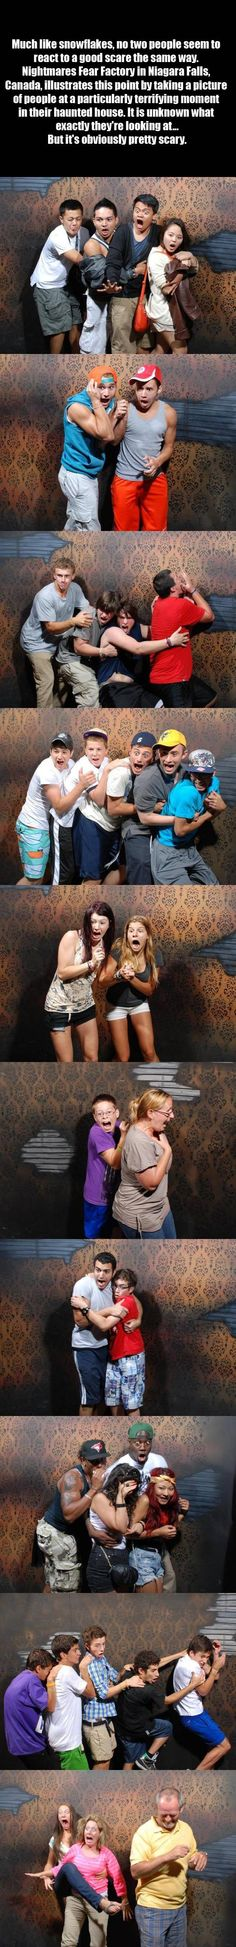 how different people get scared! made me laugh SO hard